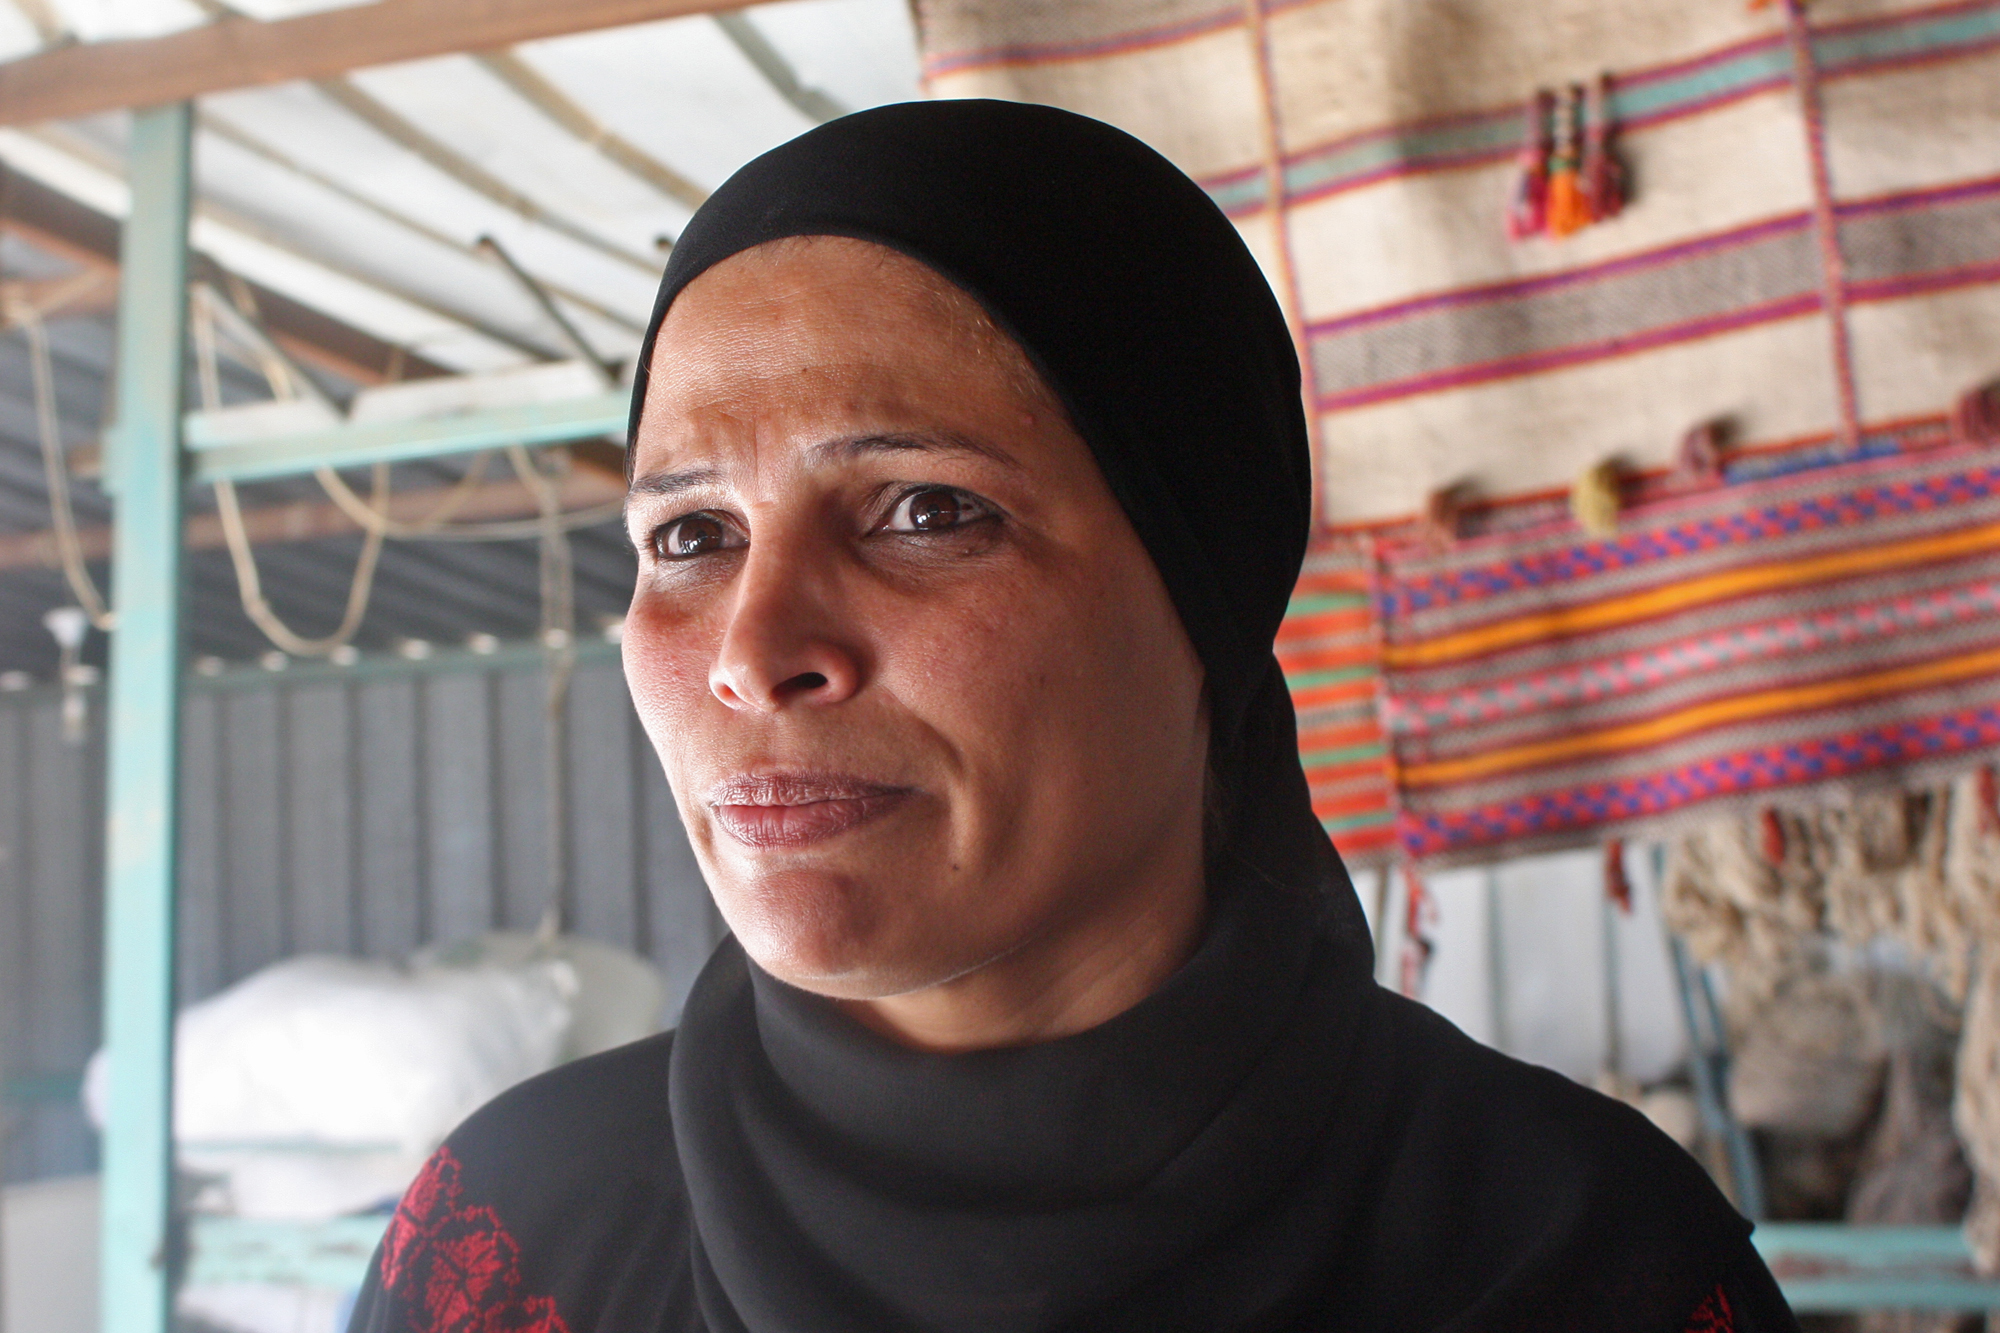 Khadra El Saneh, is the director of Sidreh, an organization supporting Bedouin women in the Negev. She launched a weaving center in Laqiya village that now employs 70 women